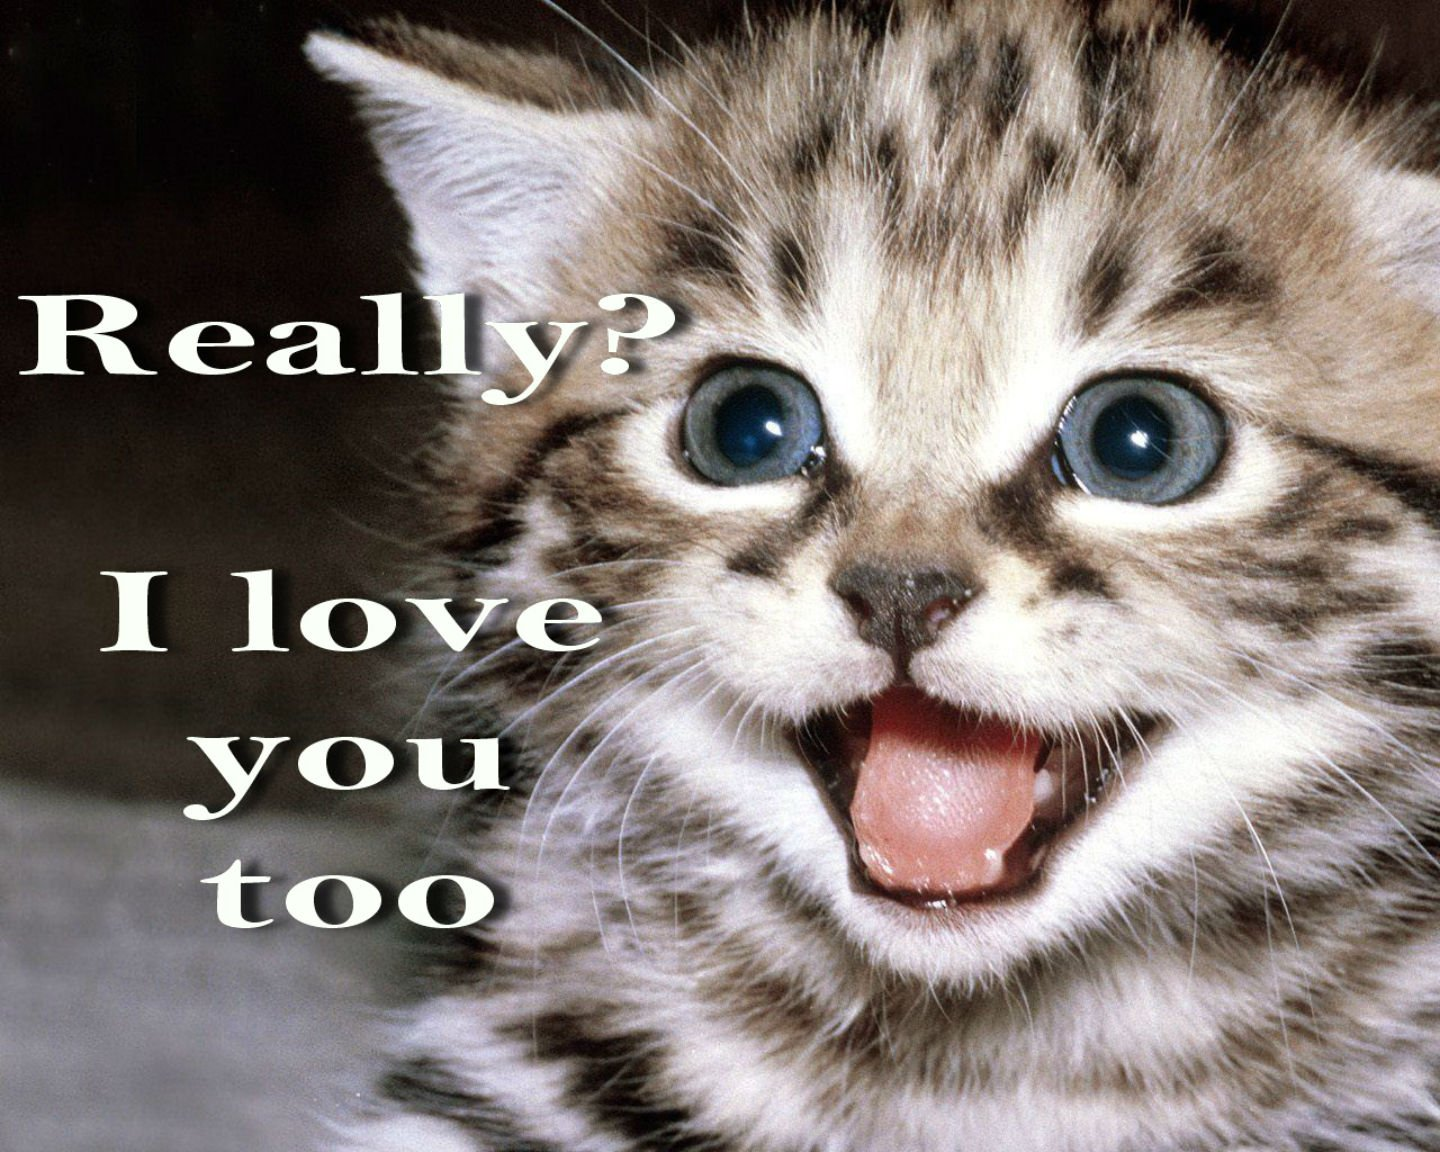 Funny Animal I Love You Quotes : Cat meme quote funny humor grumpy kitten mood love wallpaper ...